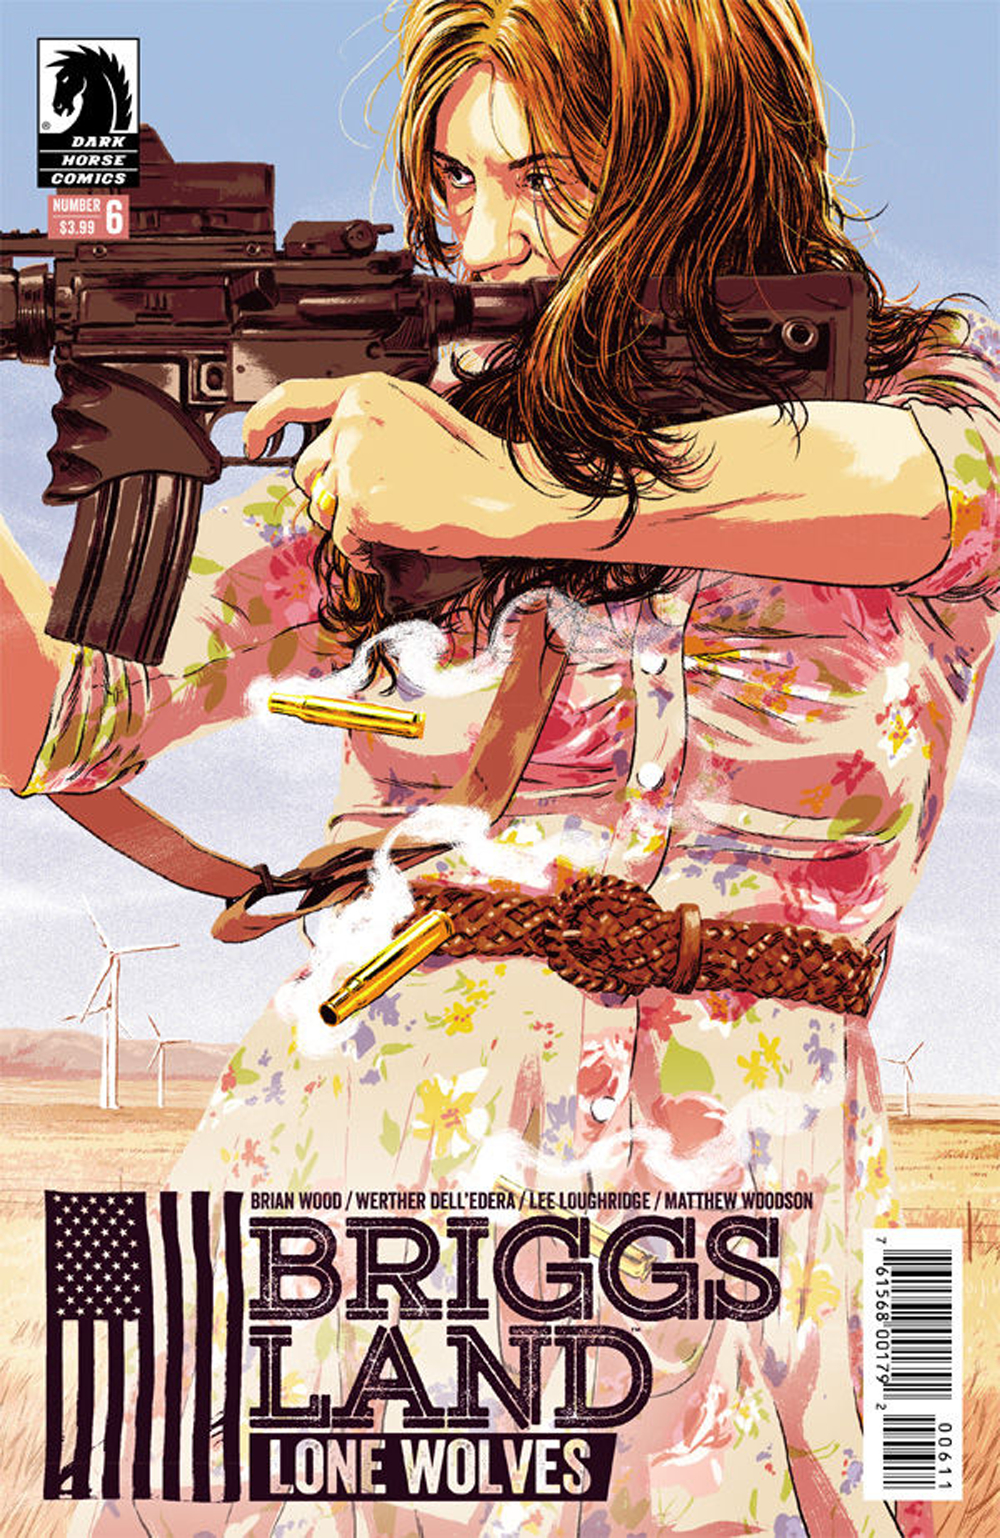 BRIGGS LAND LONE WOLVES #6 (OF 6)